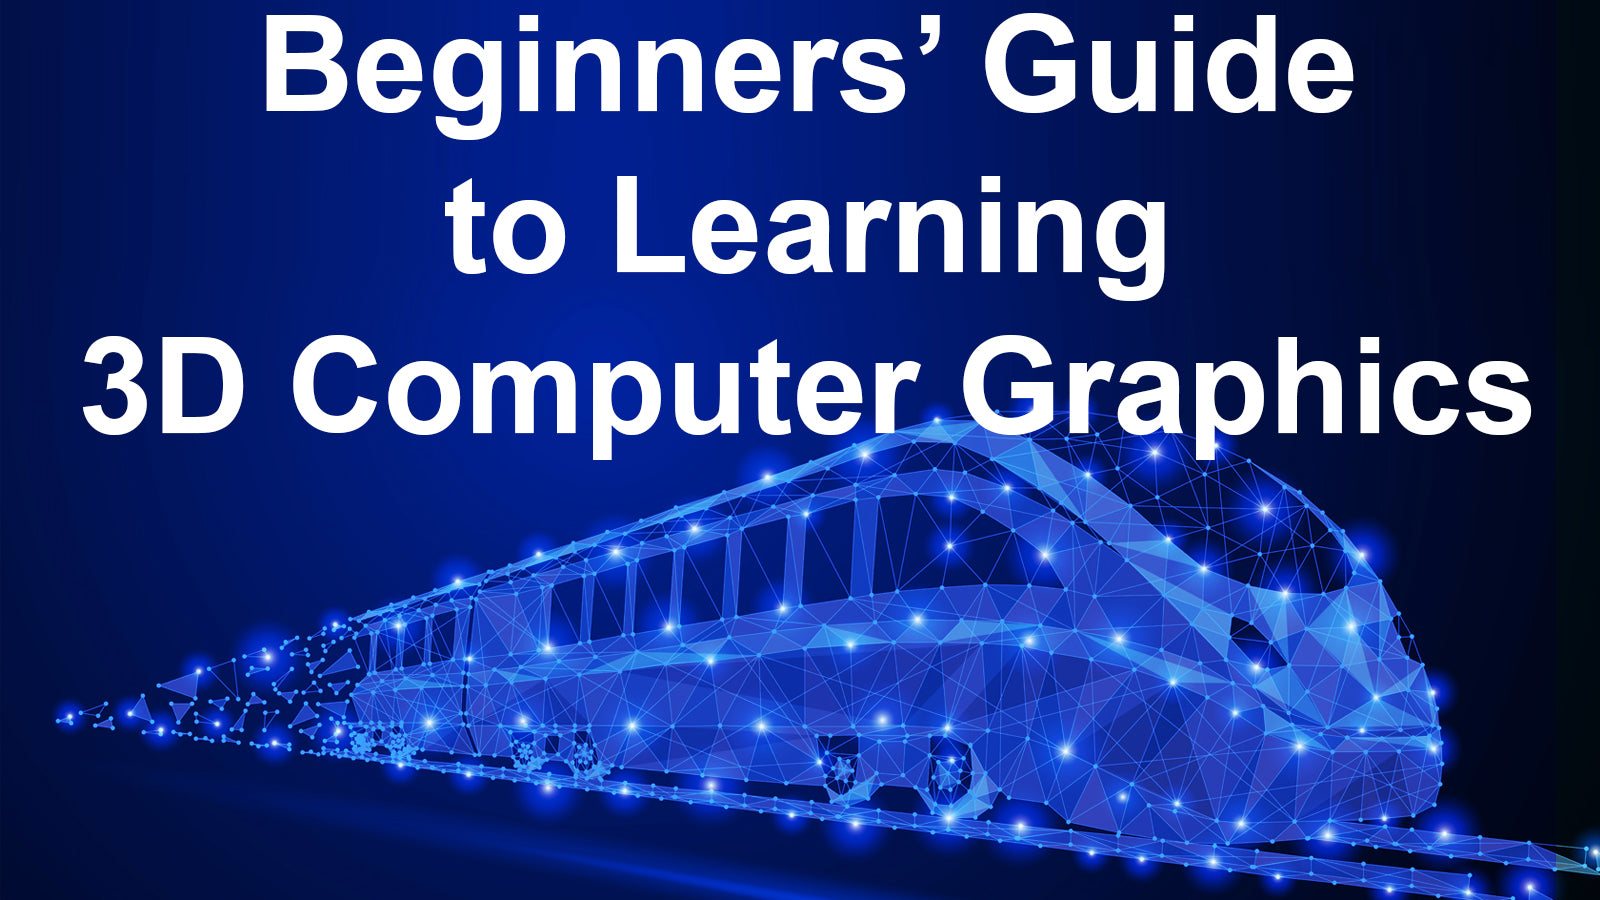 Learning 3D Computer Graphics